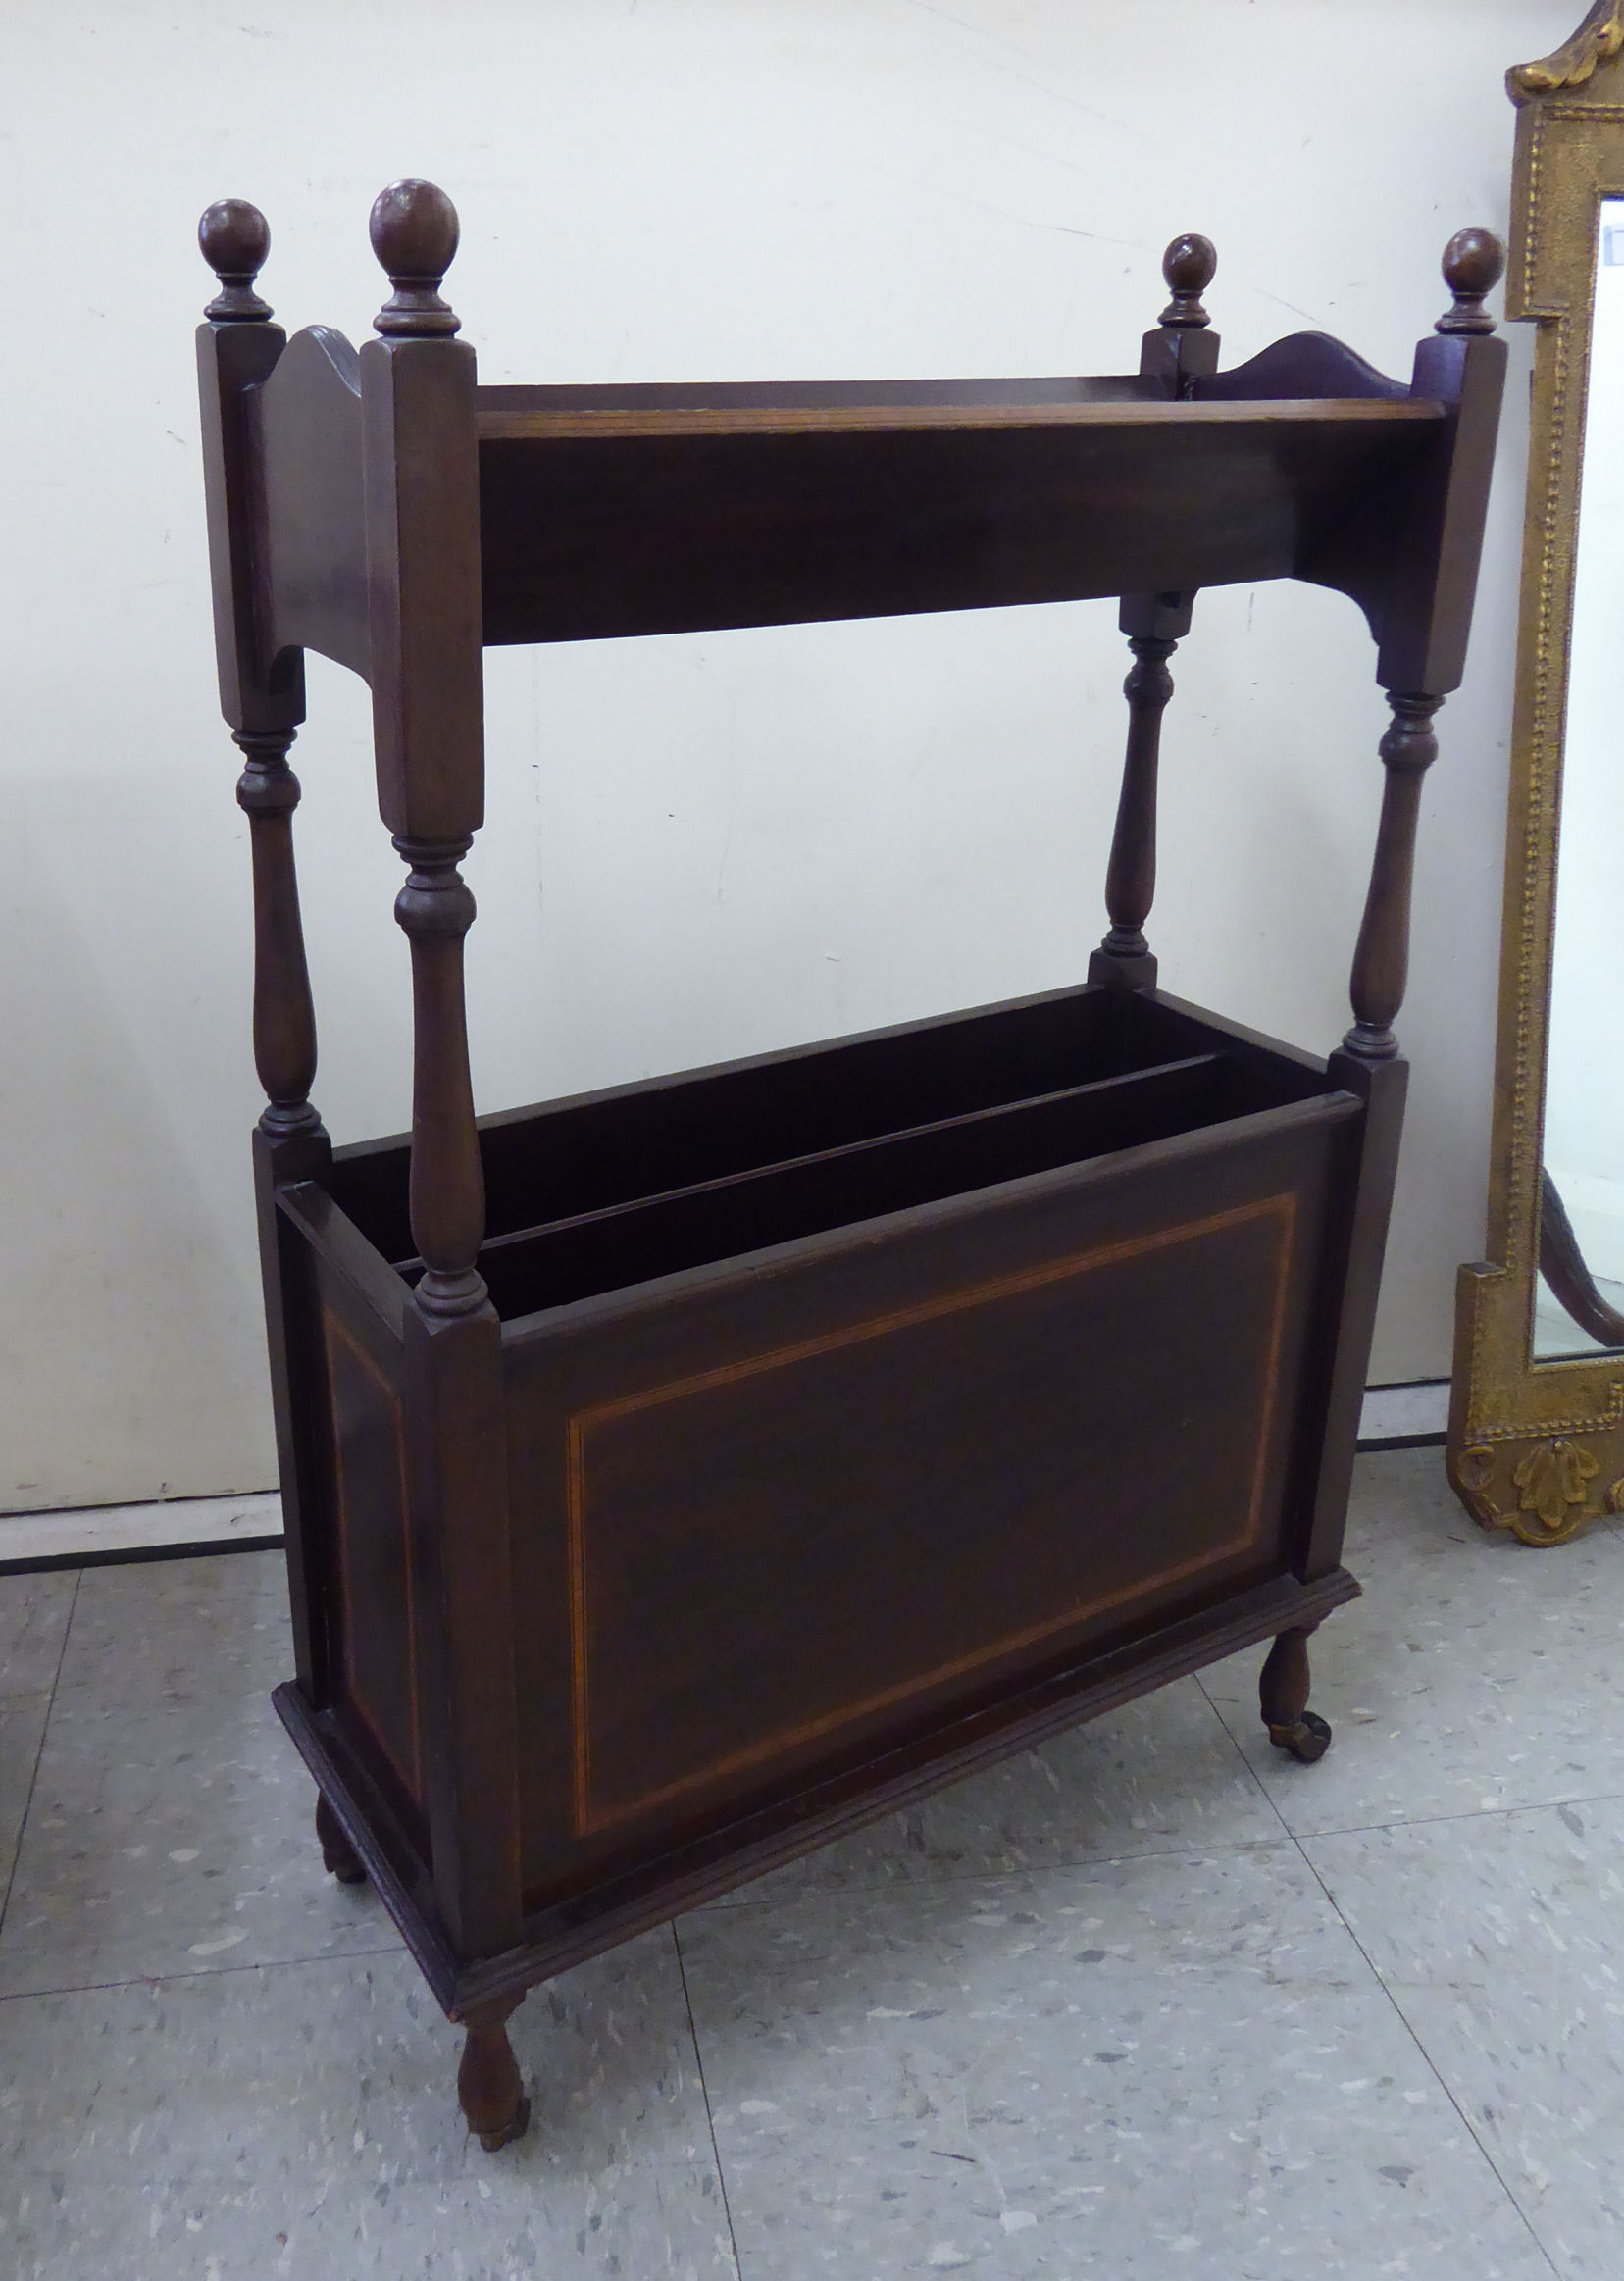 Lot 1 - An Edwardian crossbanded and string inlaid mahogany book trough, over a two division magazine rack,